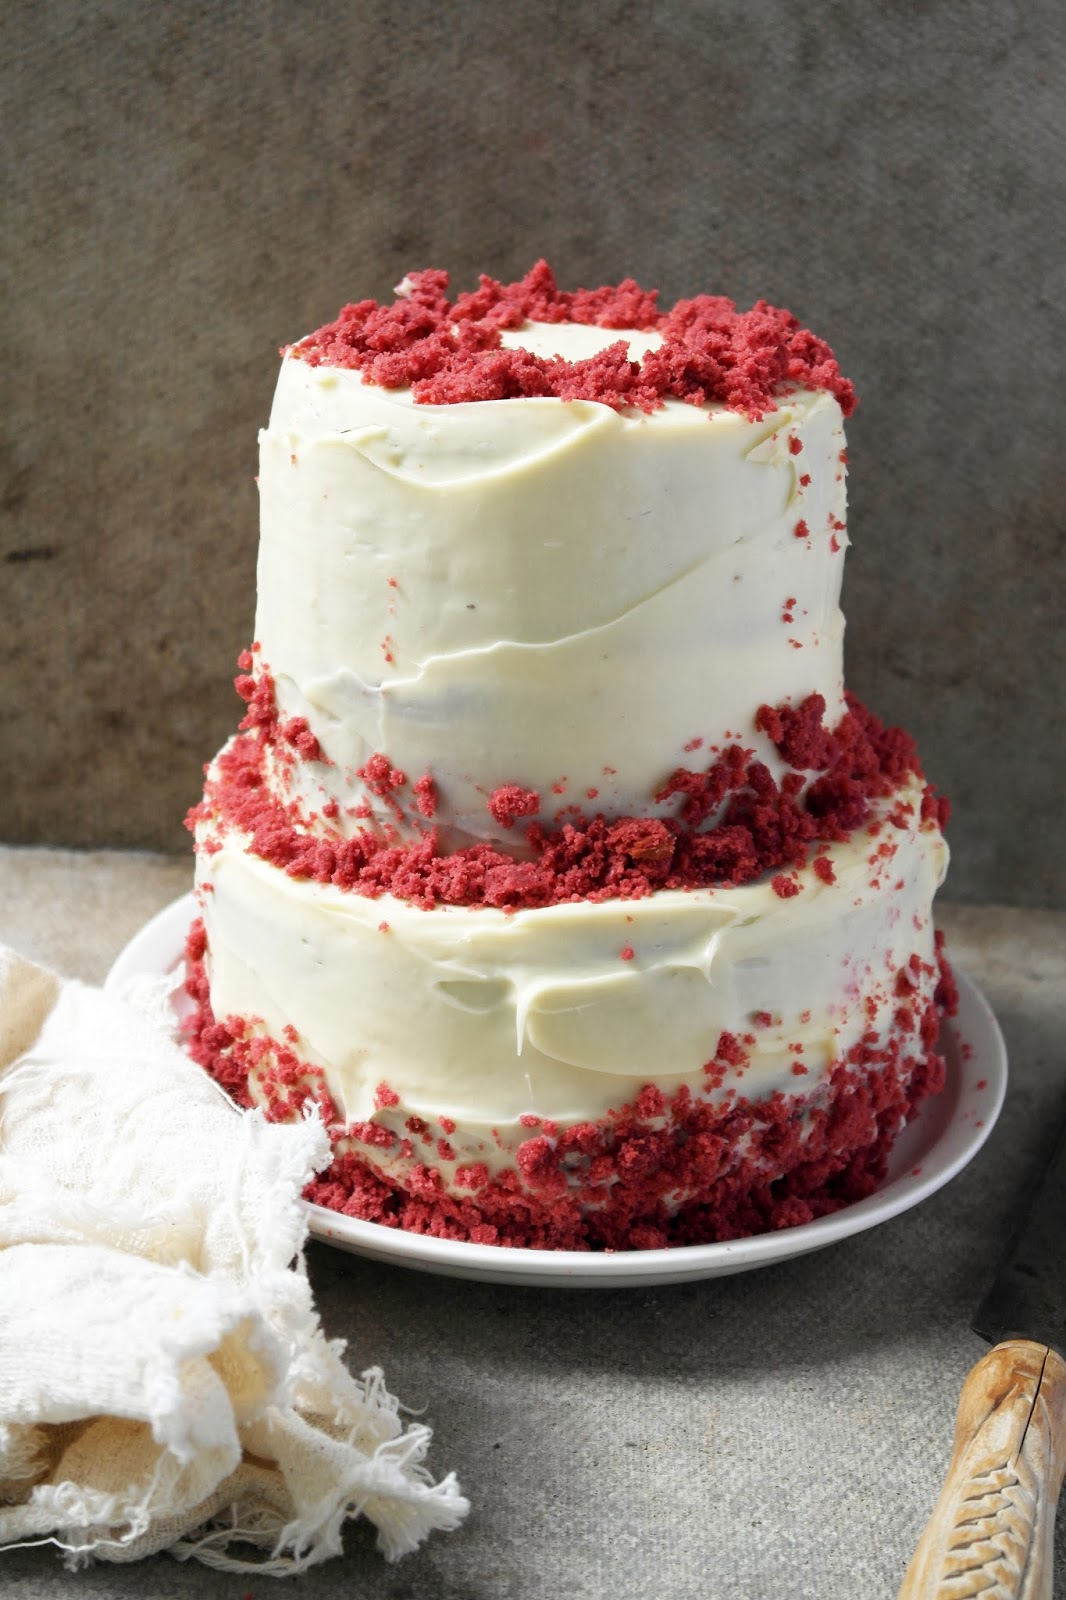 Red Velvet Cake Design Ideas : Birthday Cake Decorating Ideas 3 Joy Studio Design ...